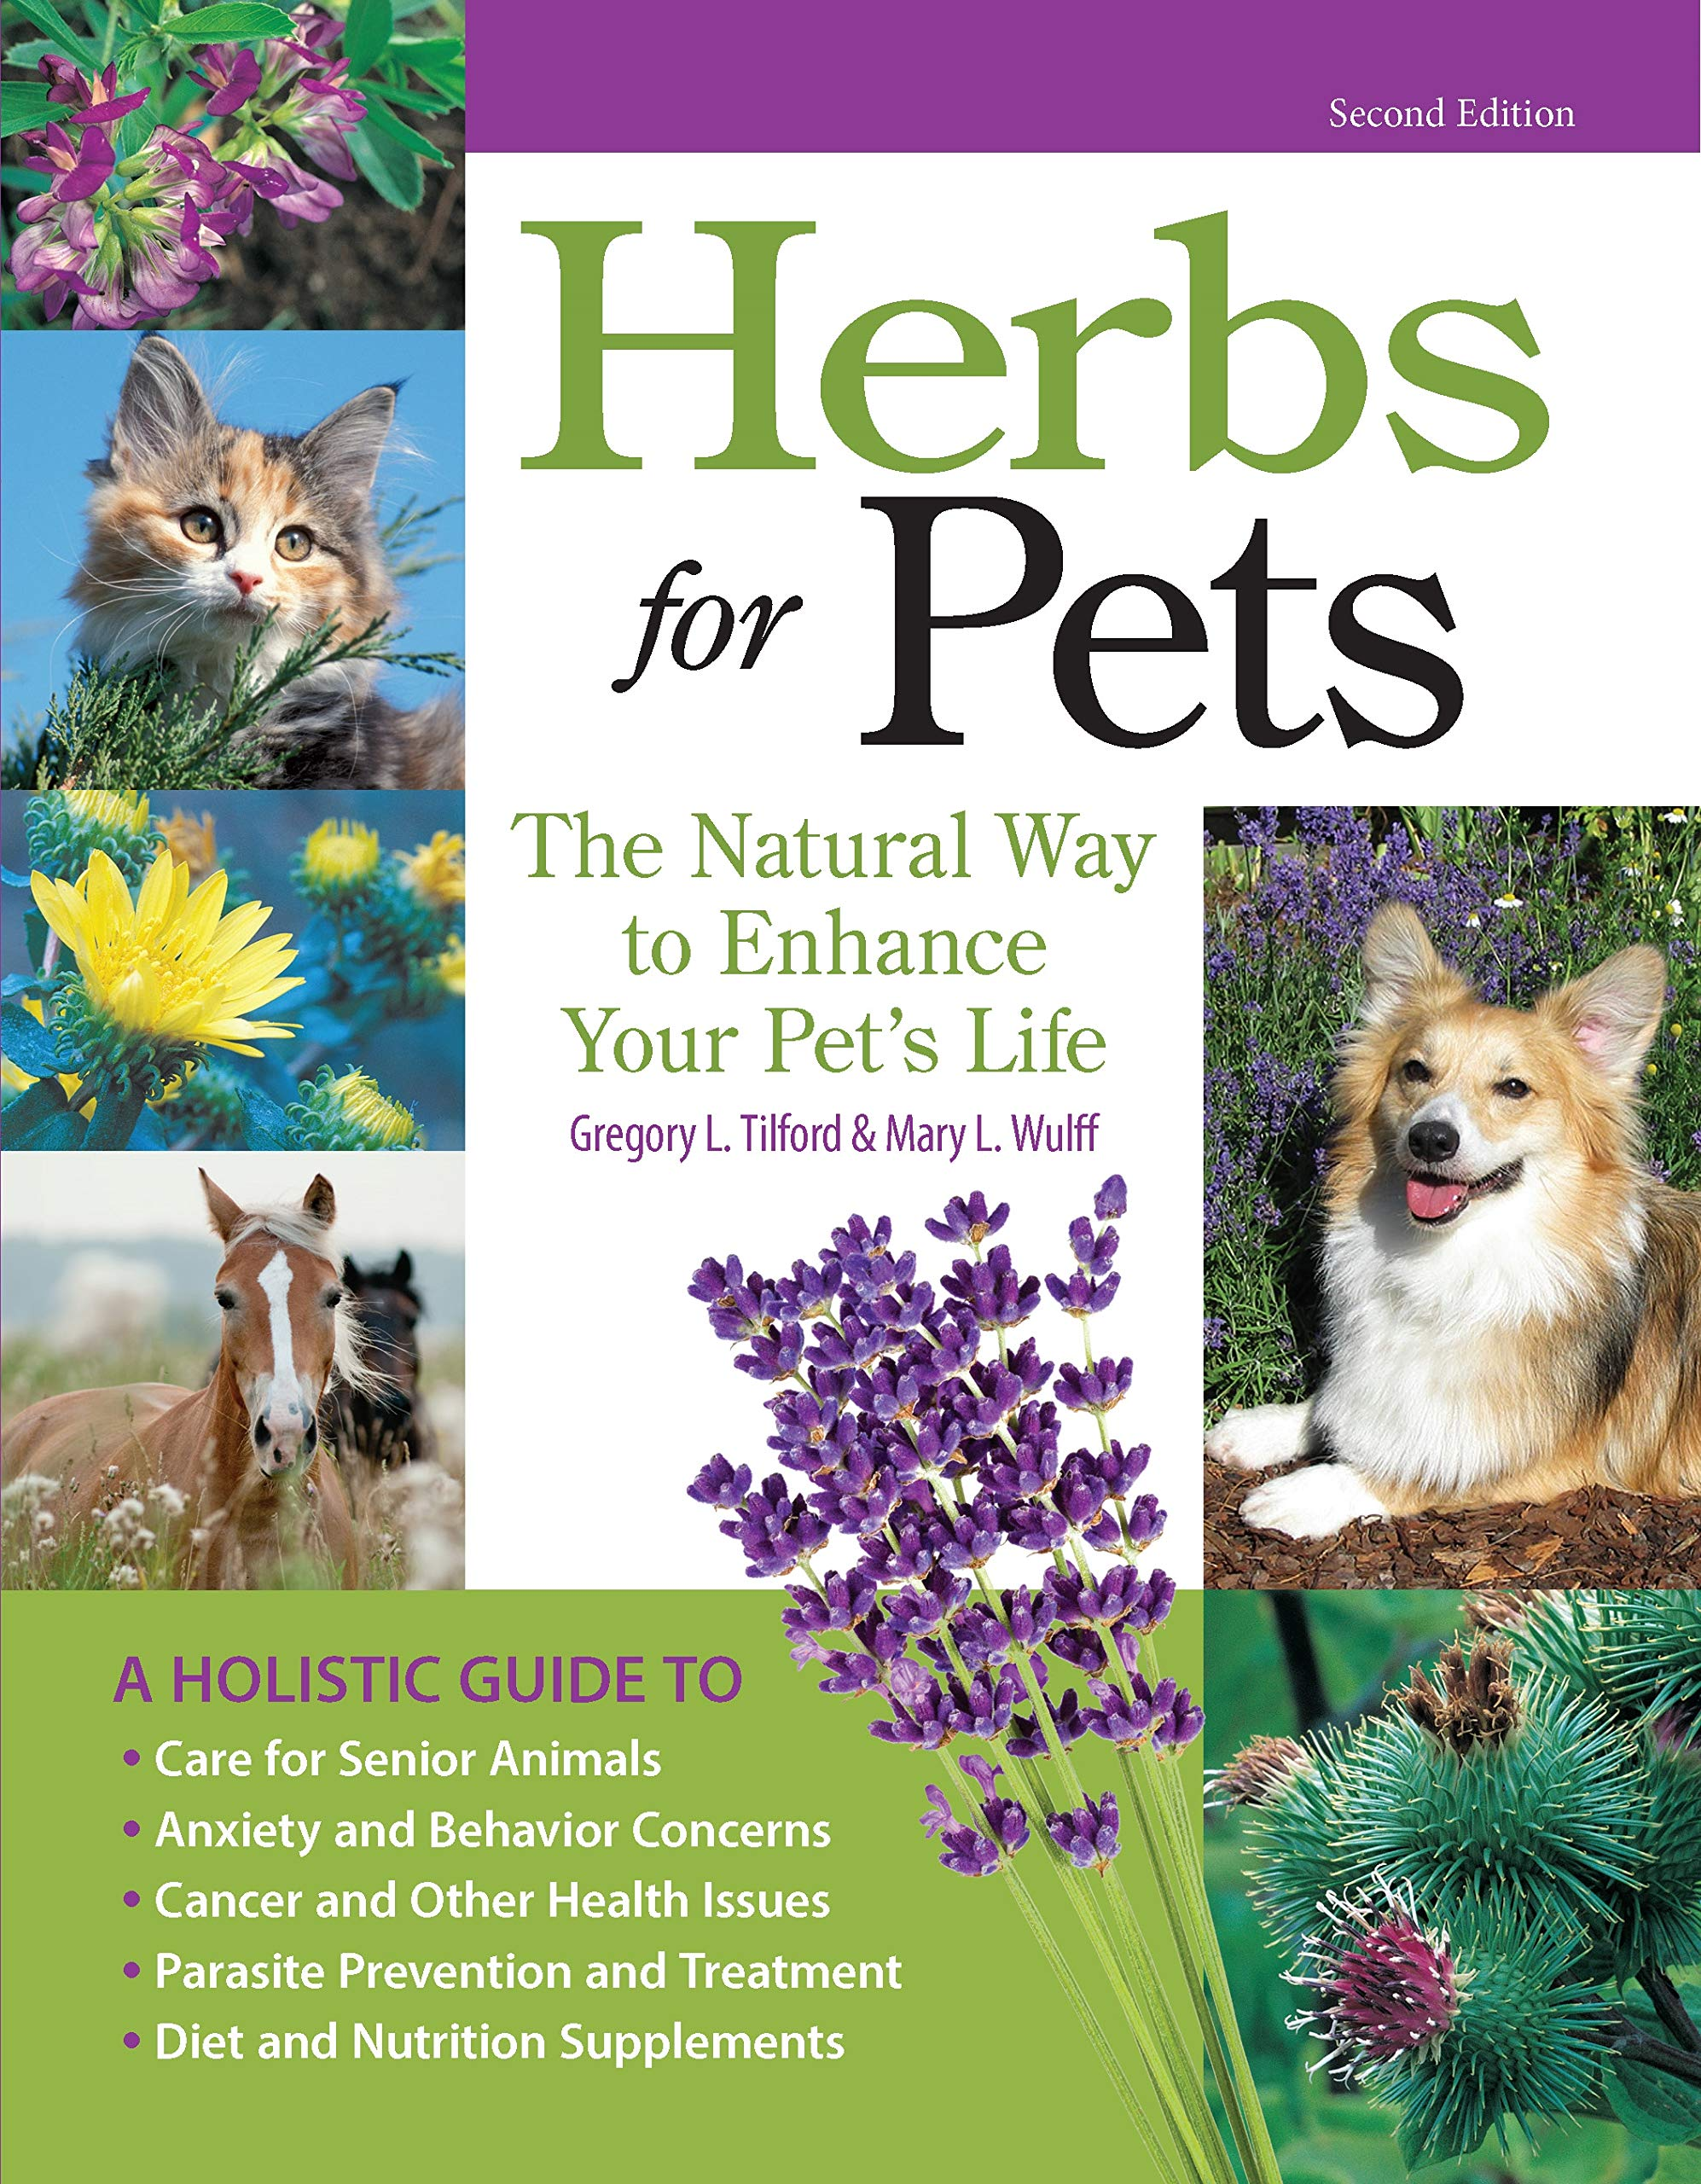 Herbs for Pets: The Natural Way to Enhance Your Pet's Life (CompanionHouse Books) A-Z Guide to Medicinal Plants, Holistic Recipes, and Nutritional Supplements for Dogs, Cats, Horses, Birds, and More